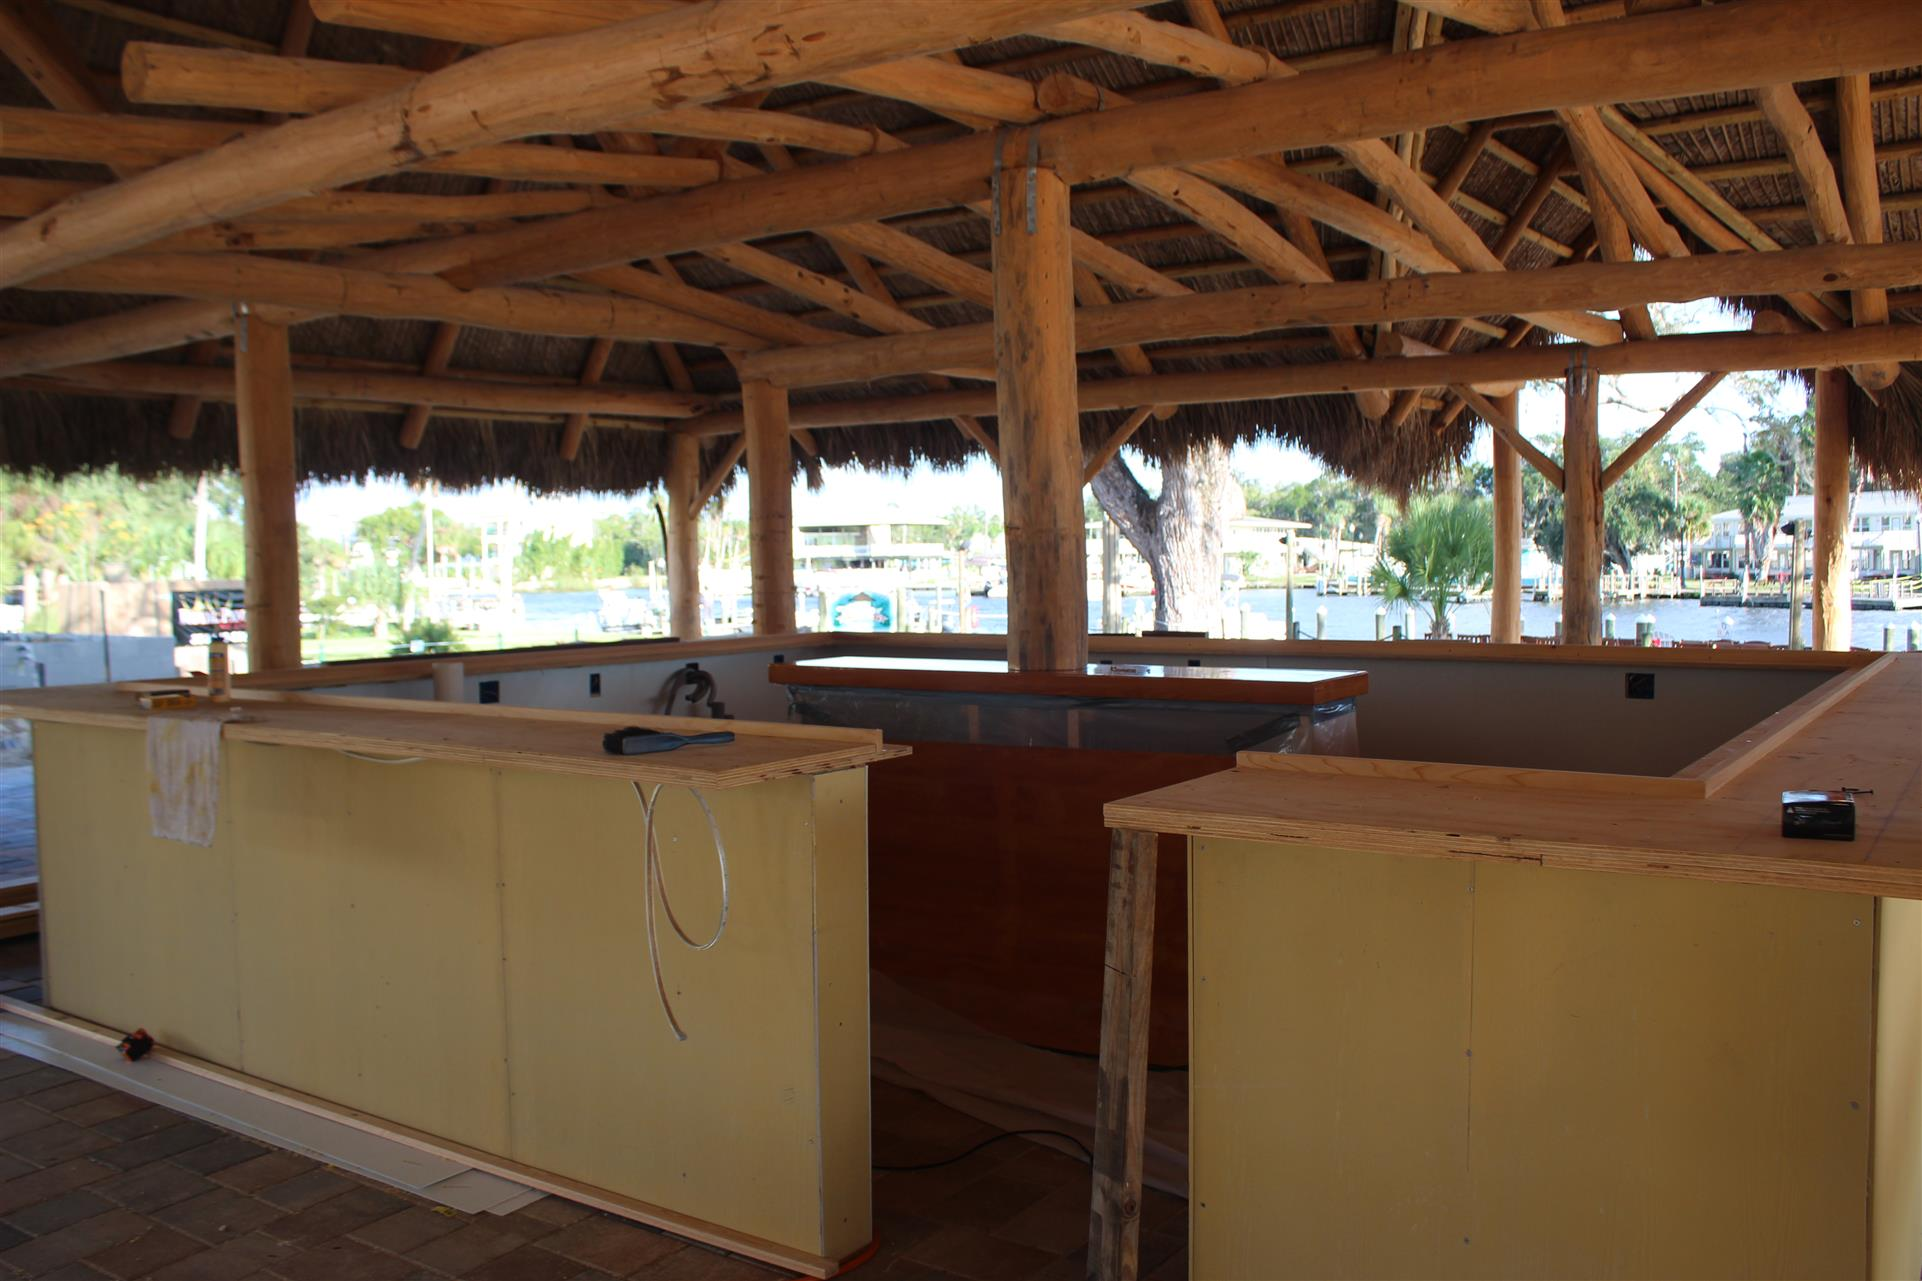 construction of a new tiki bar